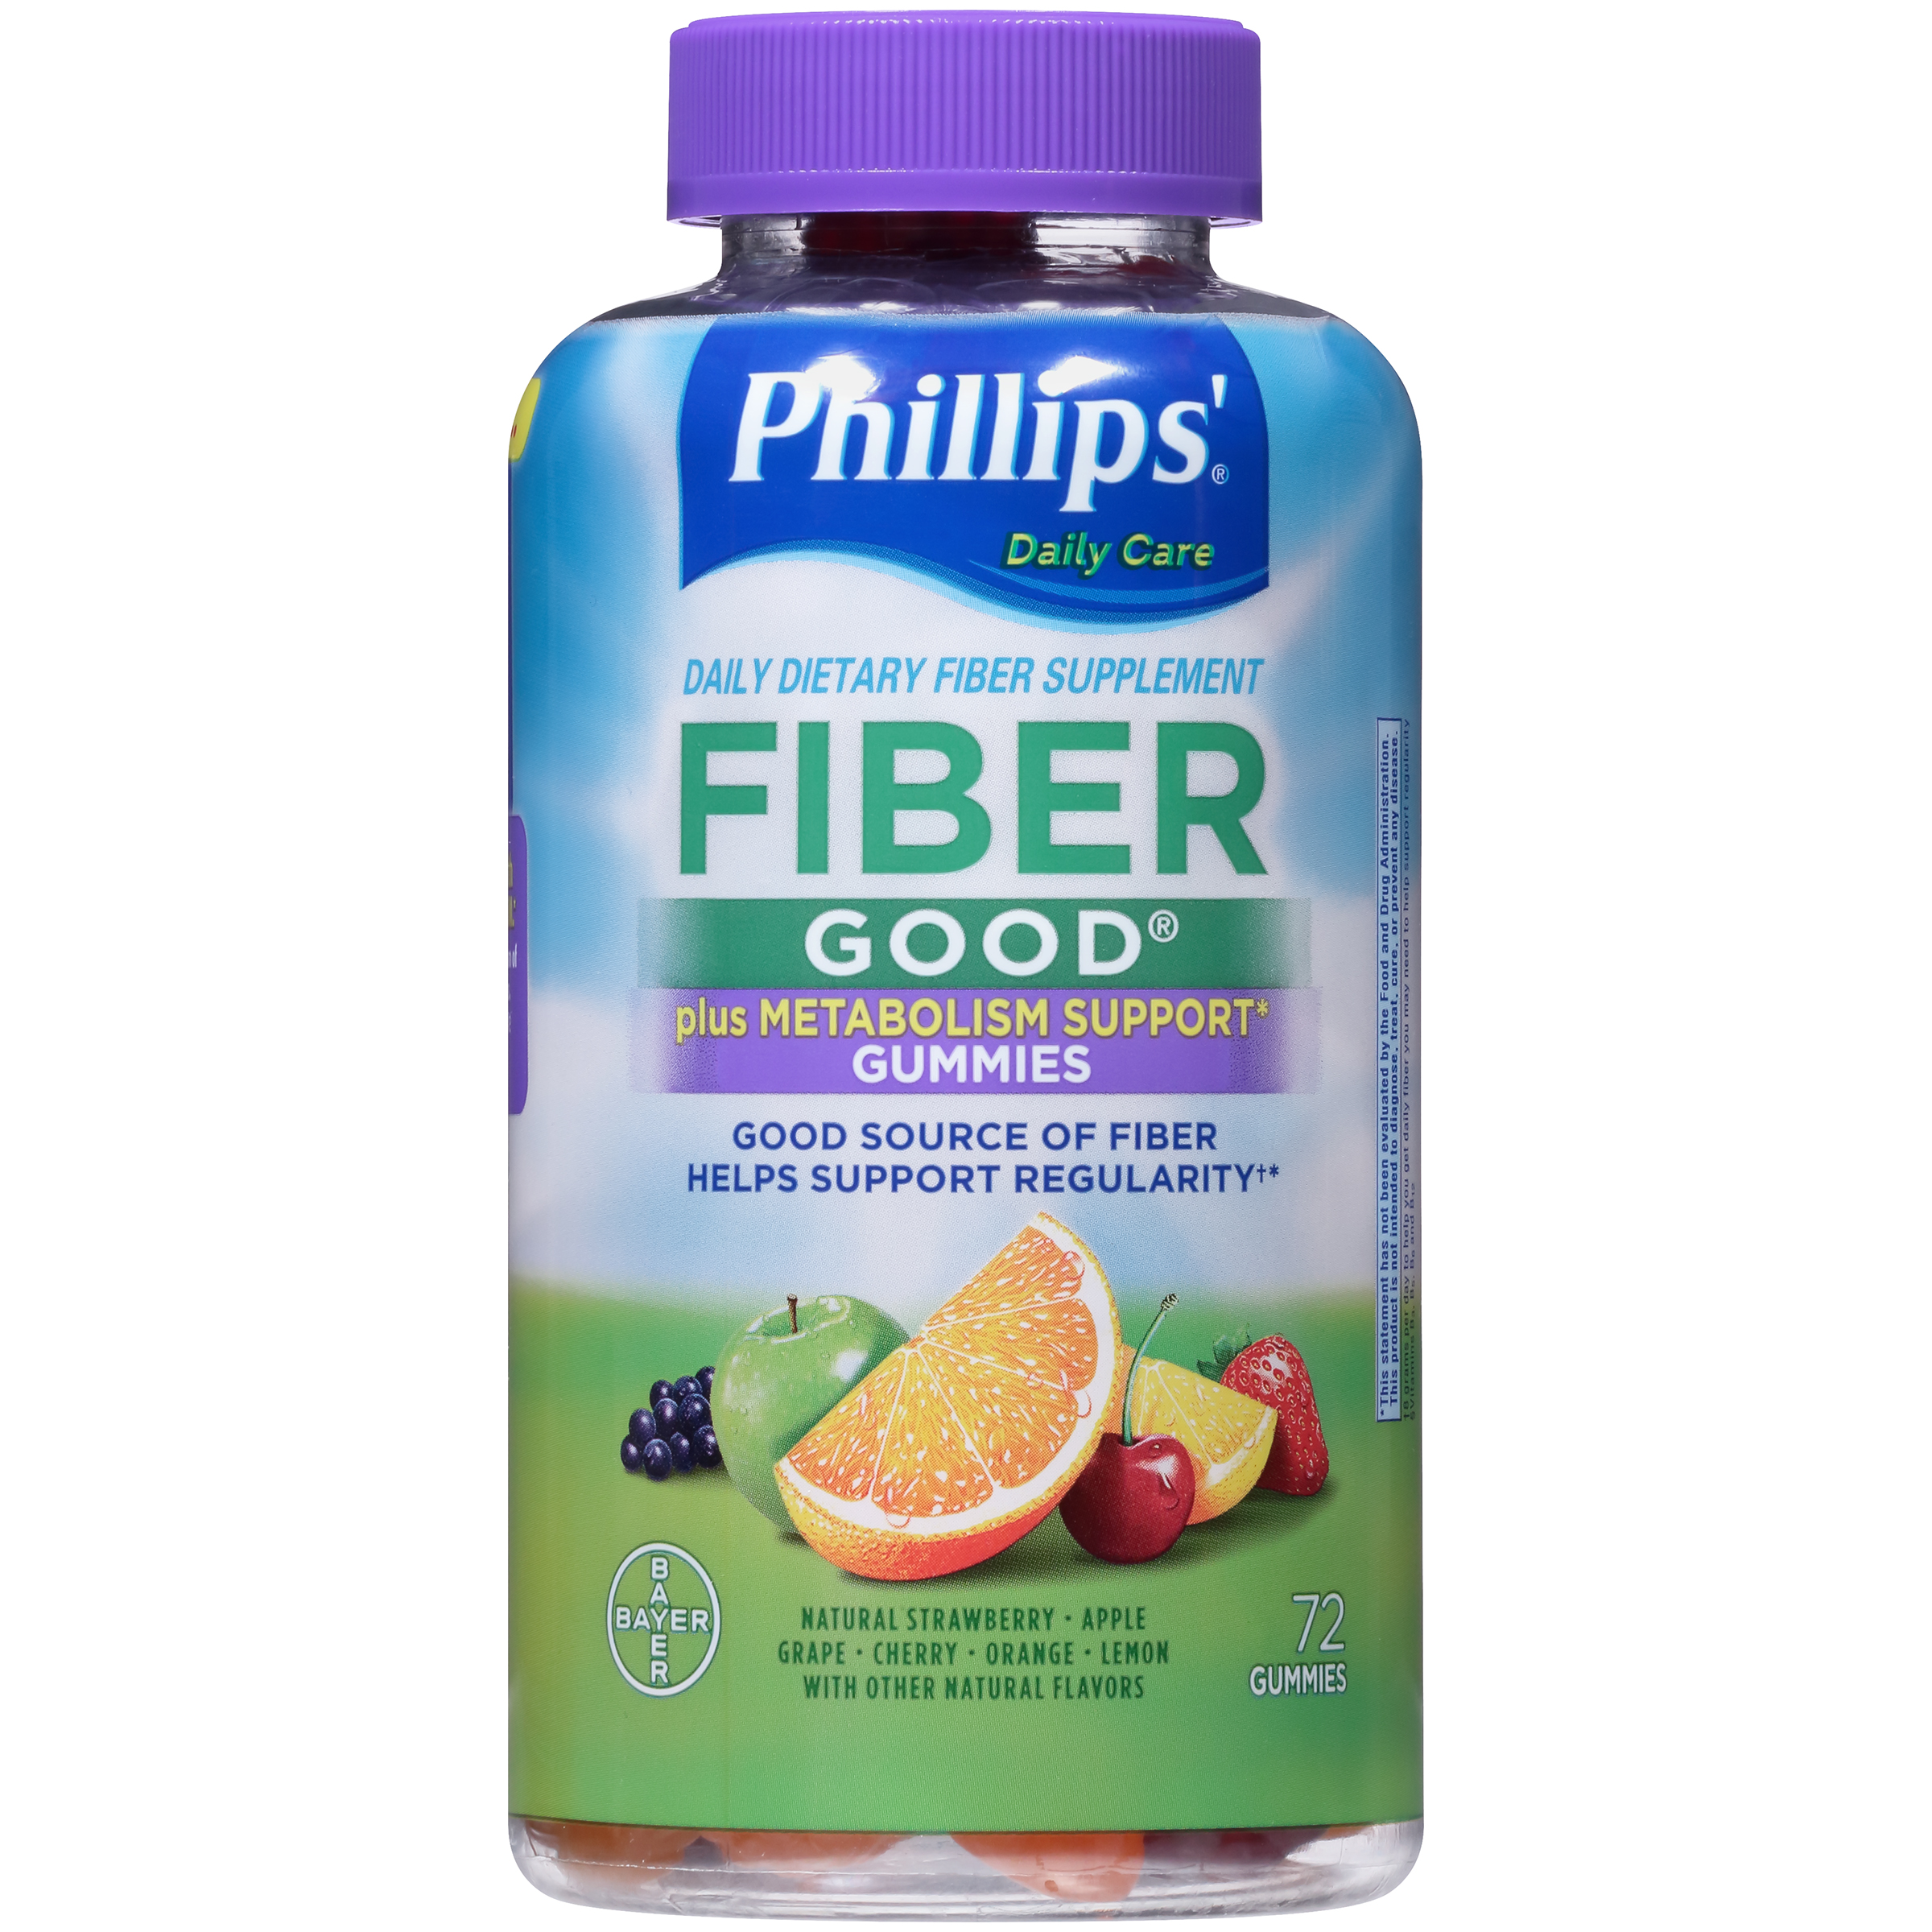 Phillips' Fiber Good Gummies + Metabolism Support, 72 Count